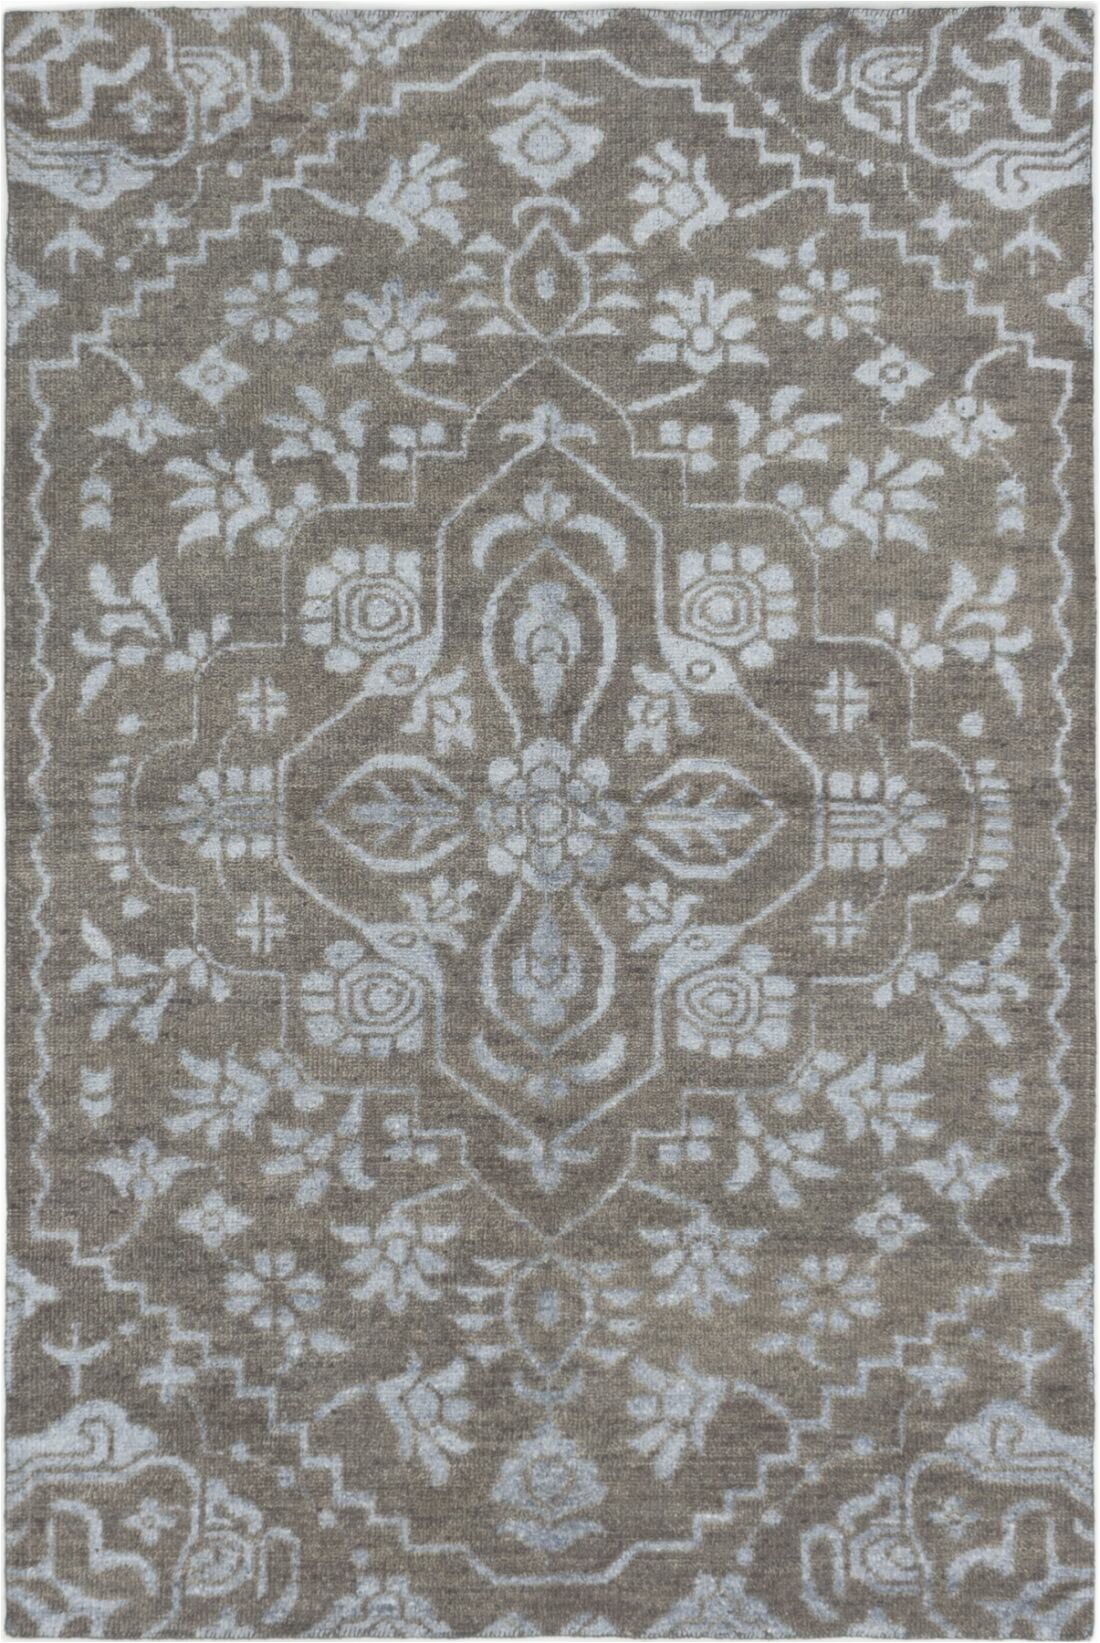 house of hampton one of a kind purnell hand knotted 2010s kazak dark gray 6 x 811 area rug w